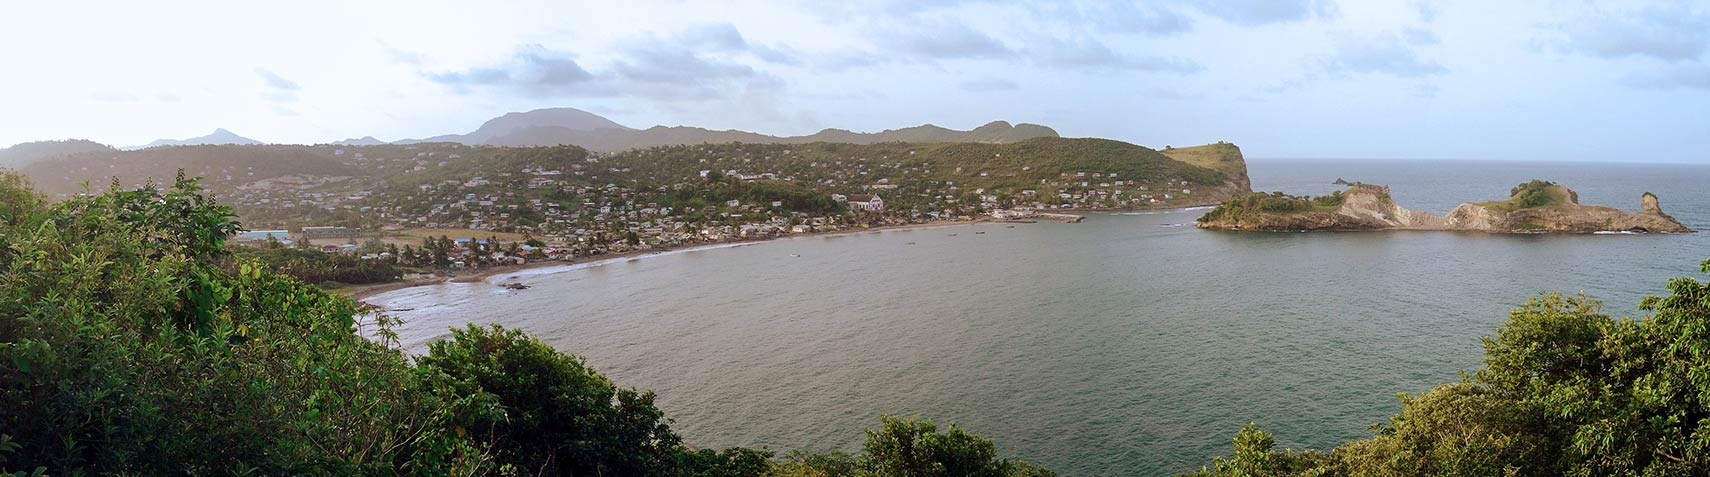 Dennery town on the east coast of the island of Saint Lucia